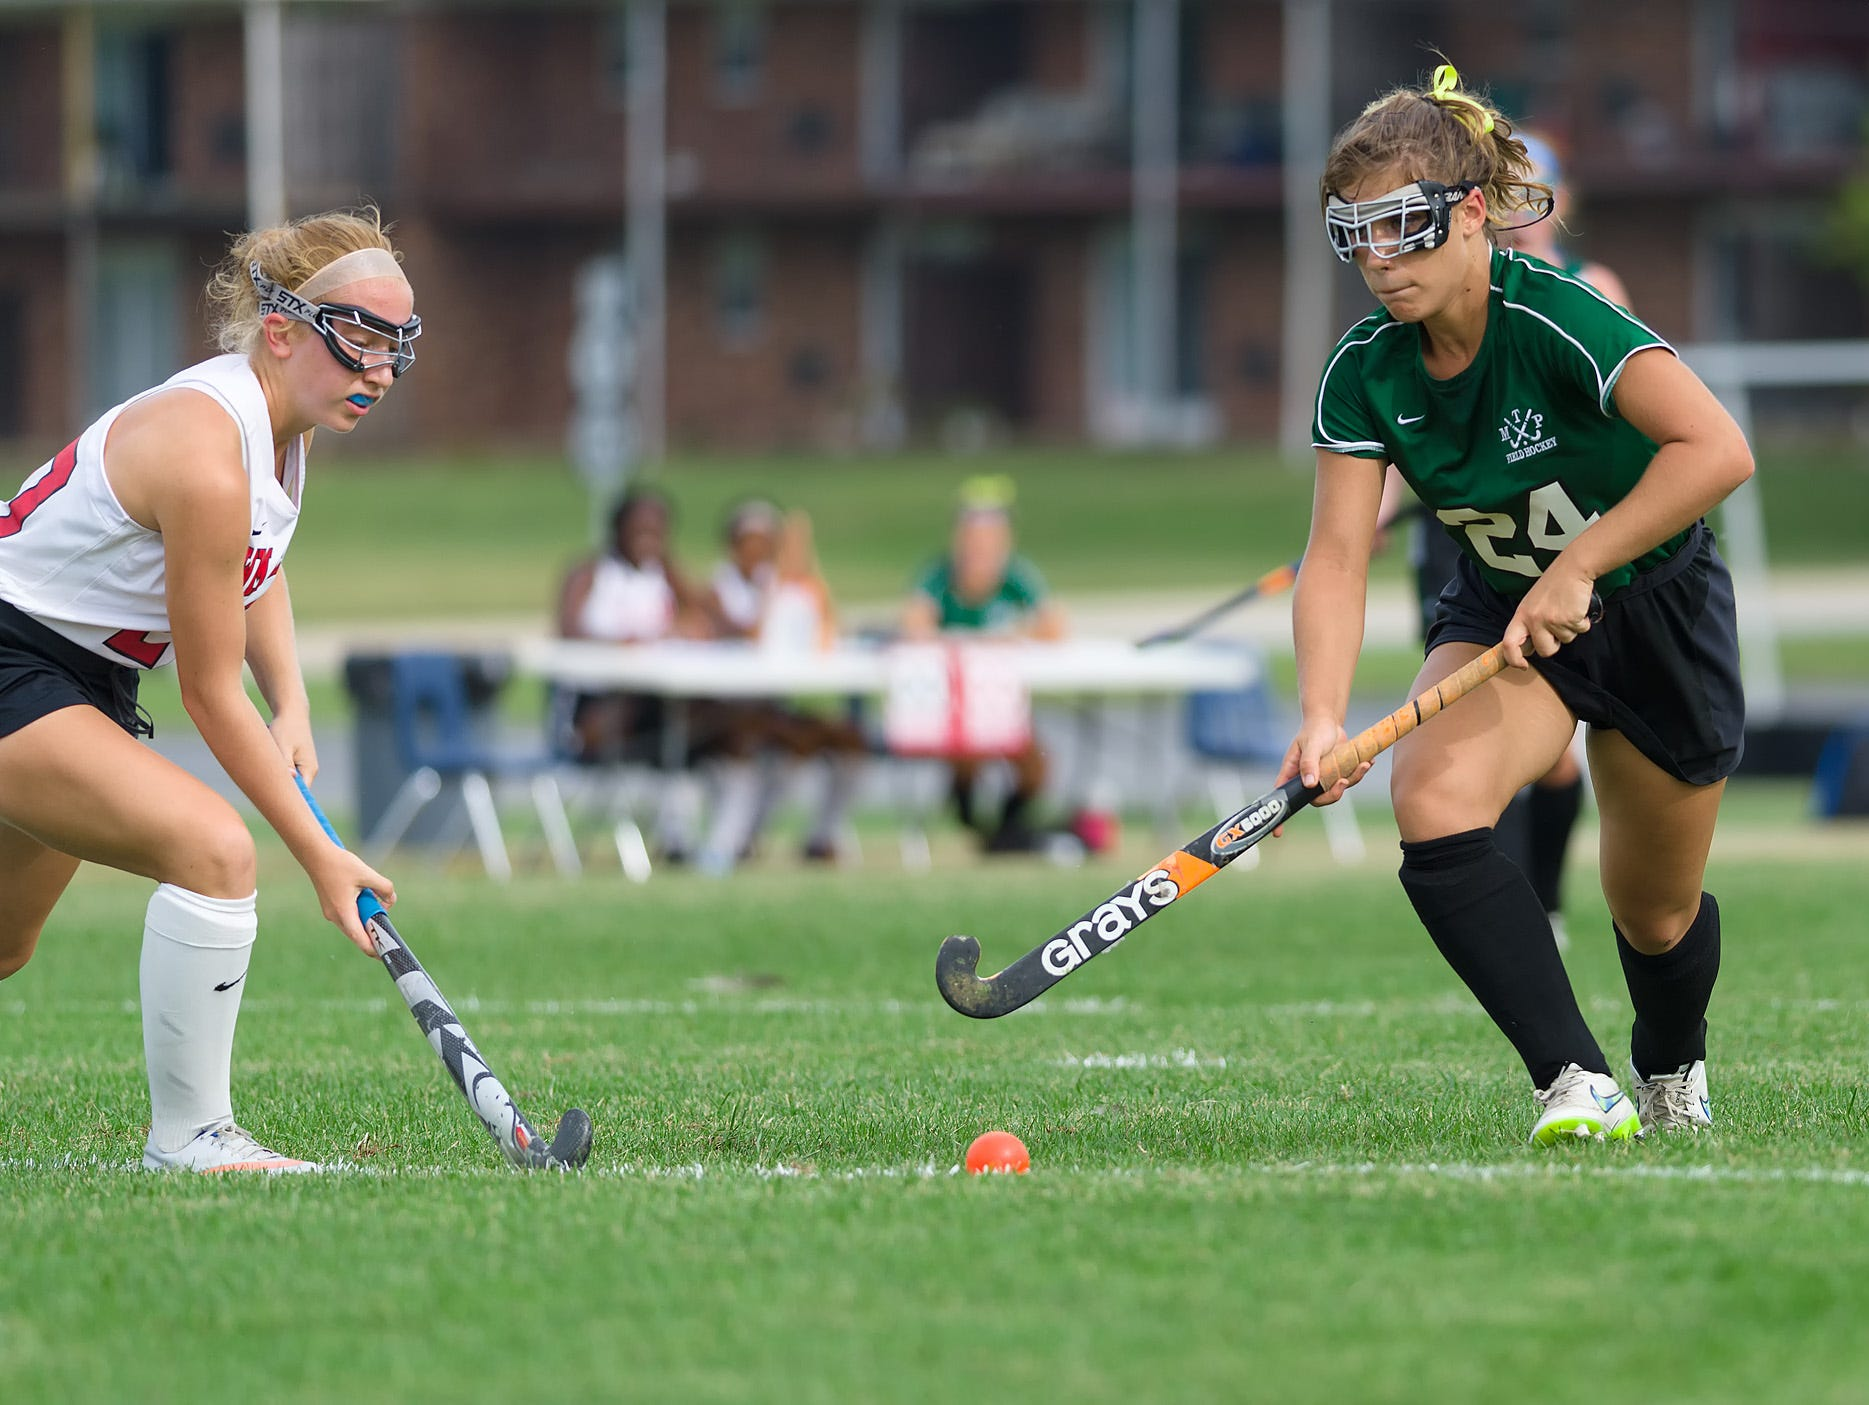 Kylee Balbach (24) of Mt. Pleasant drives the past the William Penn defense in the William Penn vs Mt. Pleasant field hockey game at William Penn on Tuesday.